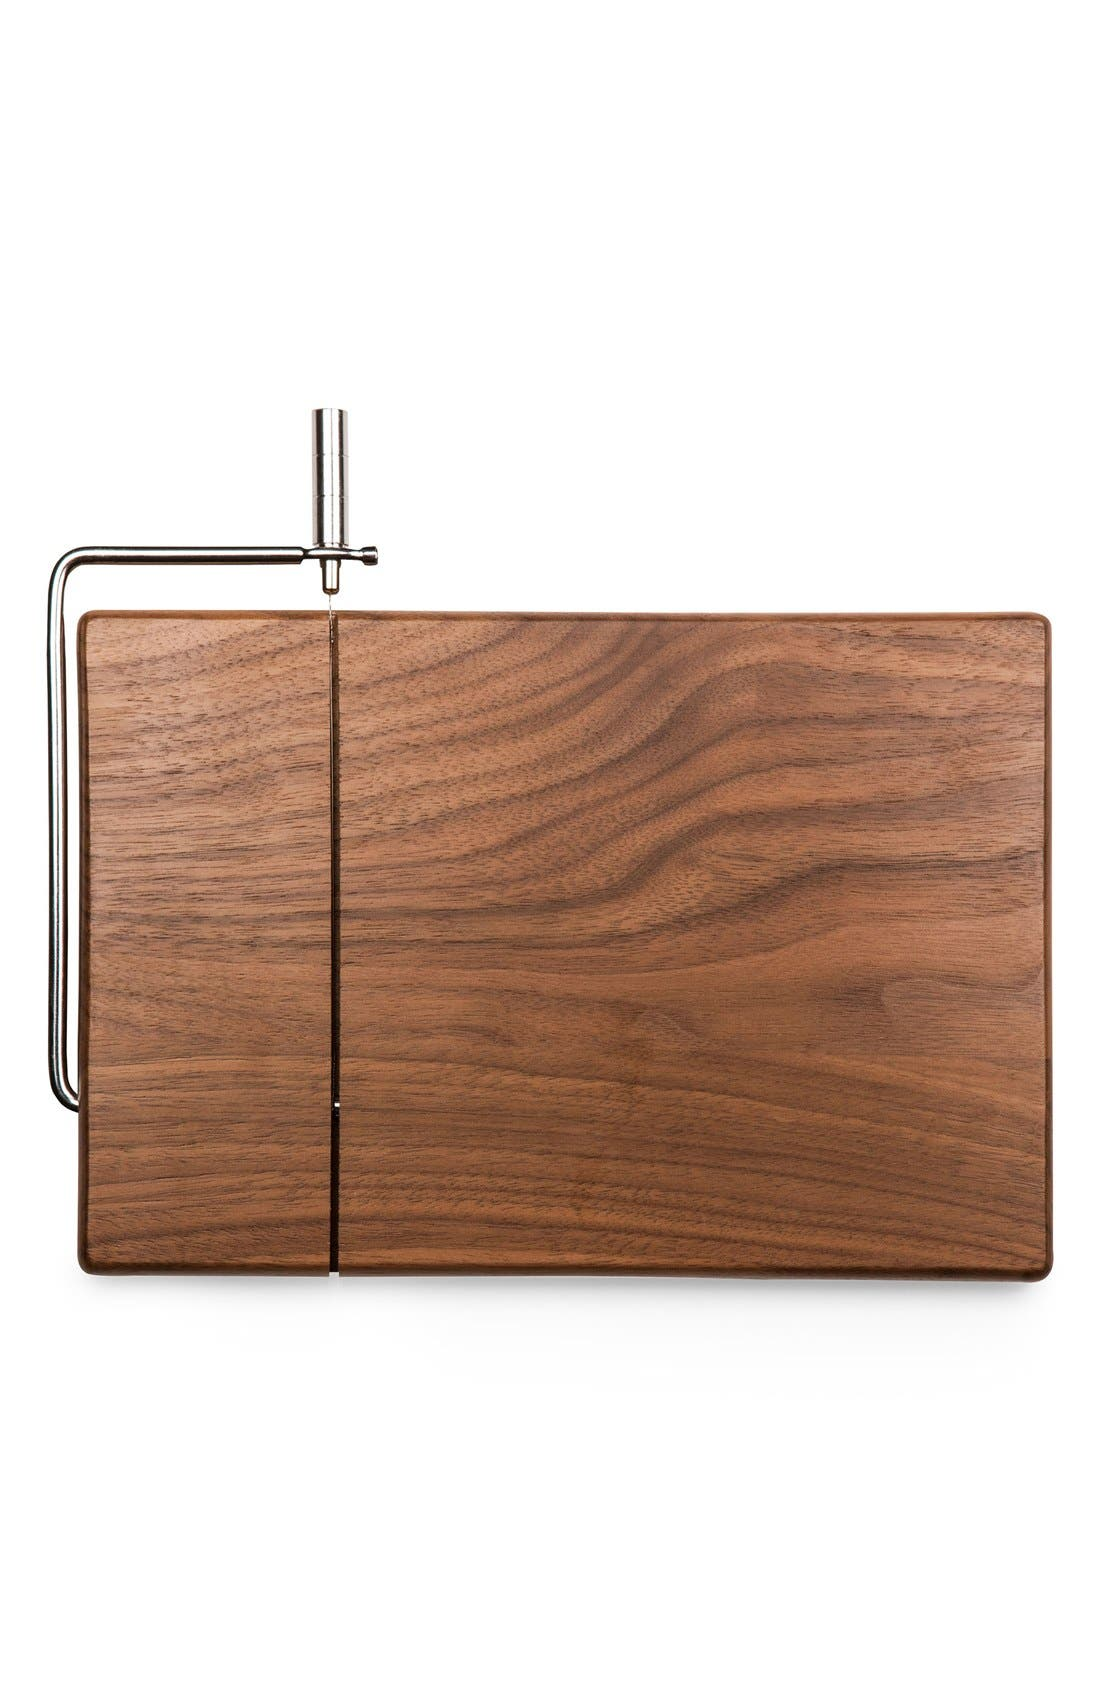 'Meridian' Black Walnut Cutting Board with Slicer,                             Alternate thumbnail 3, color,                             Black